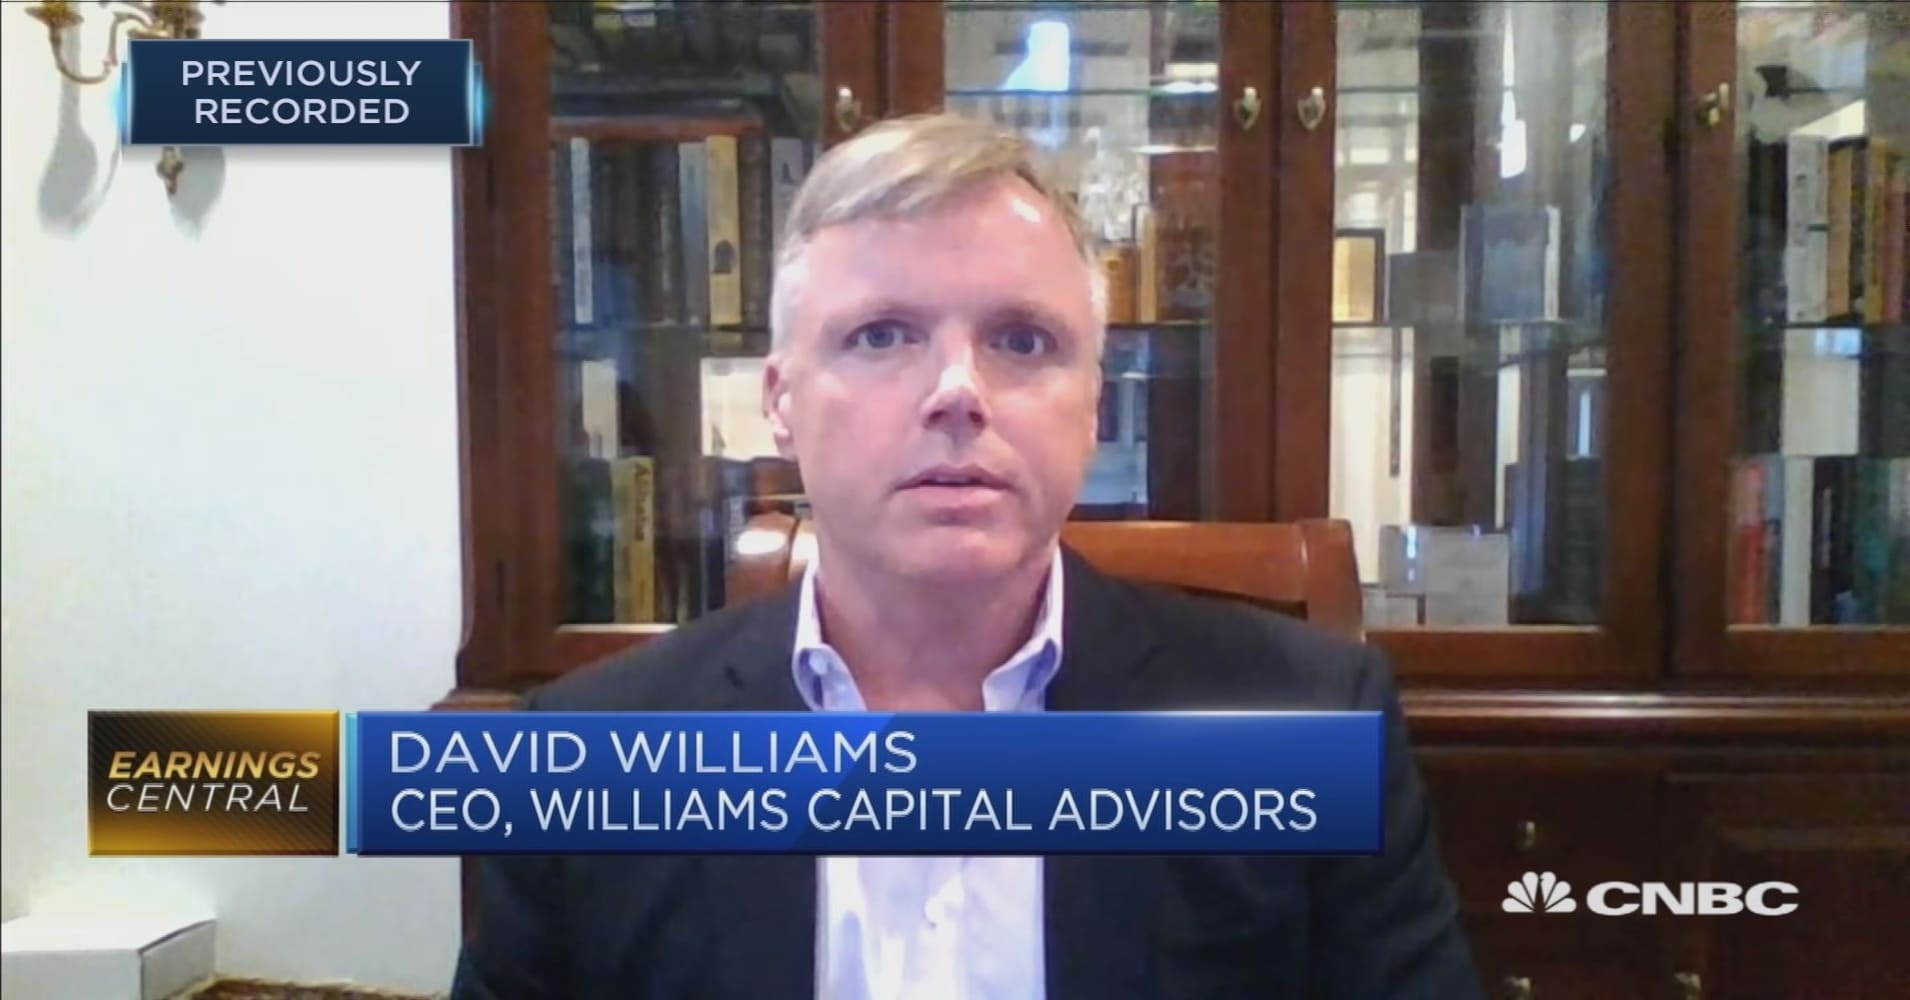 Facebooks investors are breathing a big sigh of relief williams facebooks investors are breathing a big sigh of relief williams capital advisors malvernweather Choice Image